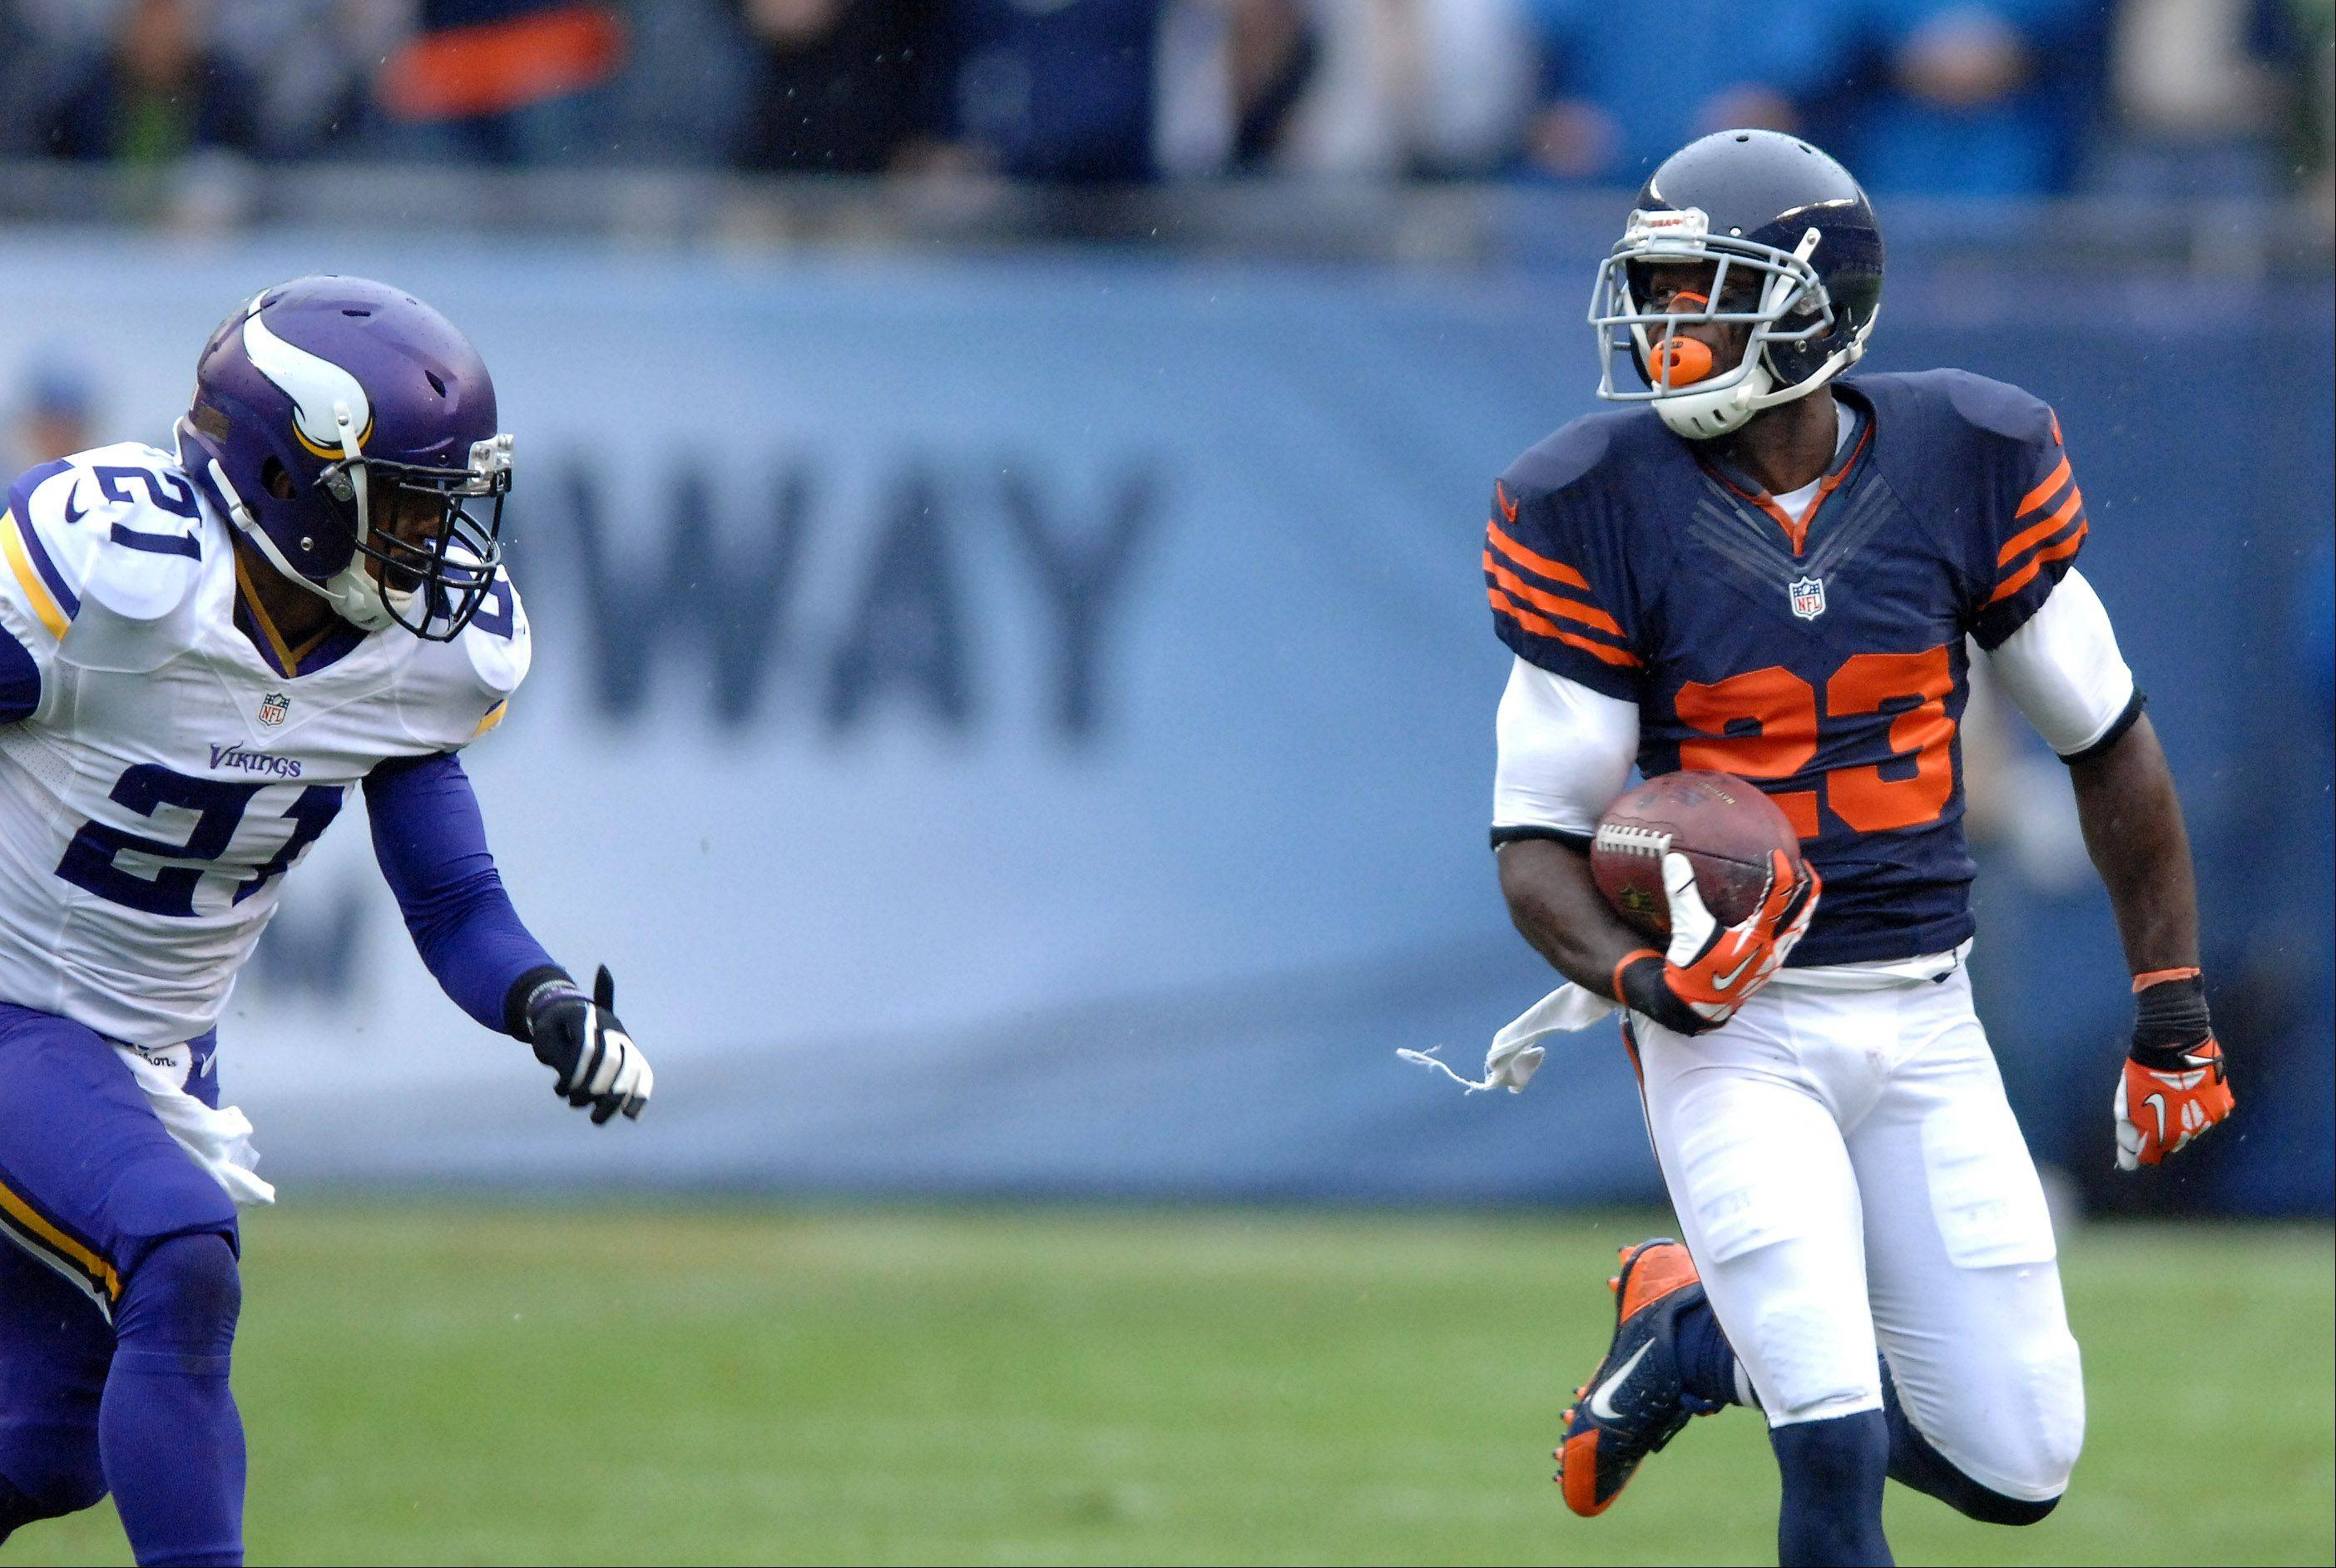 Devin Hester leaves Minnesota's Josh Robinson behind during one of his kick returns during Sunday's victory over the Vikings.